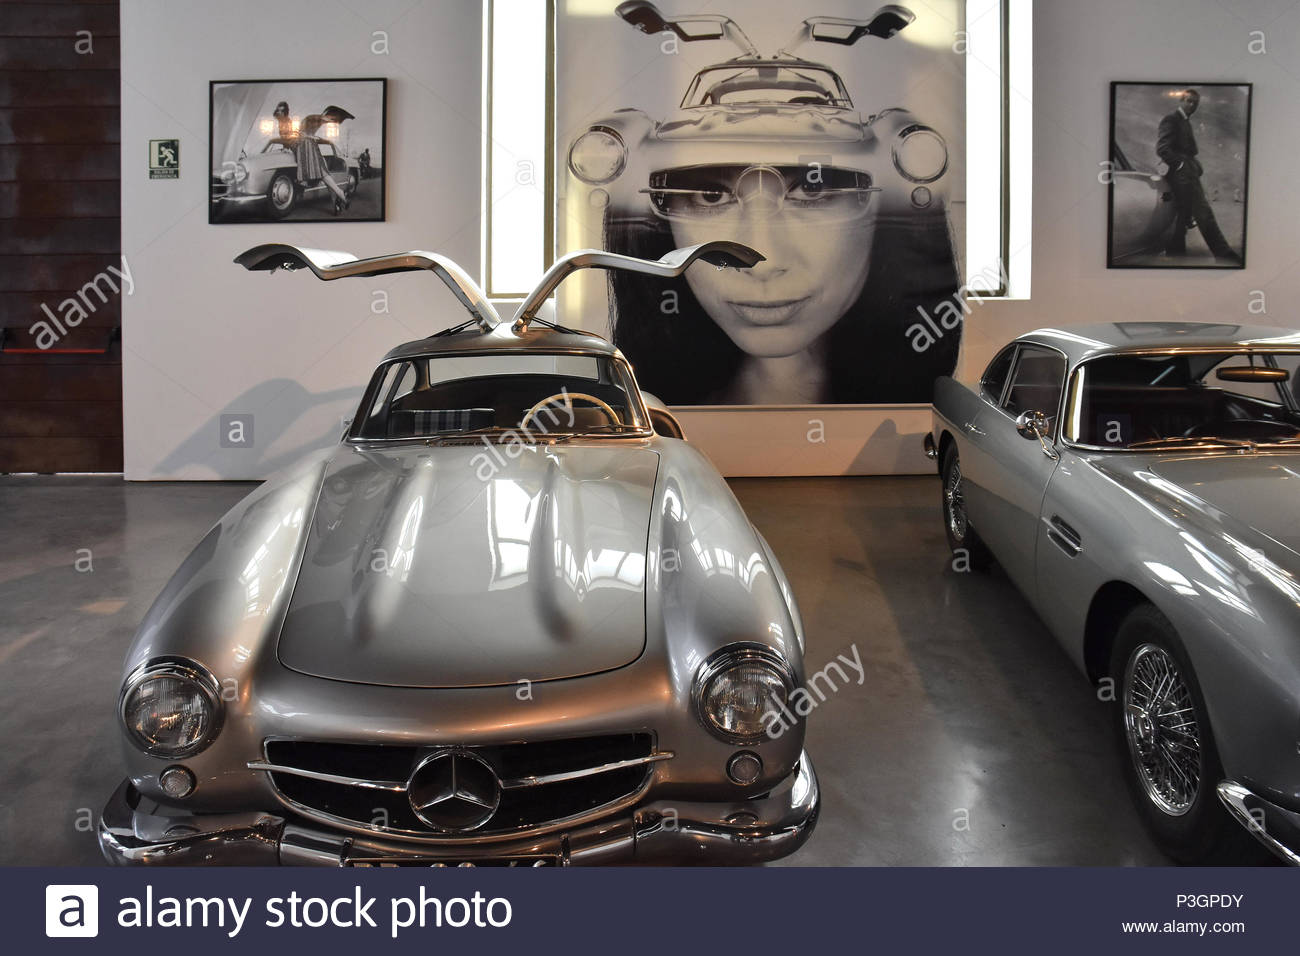 'Gullwing - The Legend'  Mercedes Benz Model 300 SL coupe displayed at Museum of Automobiles (Museo Automovilístico ) in Malaga Spain. - Stock Image